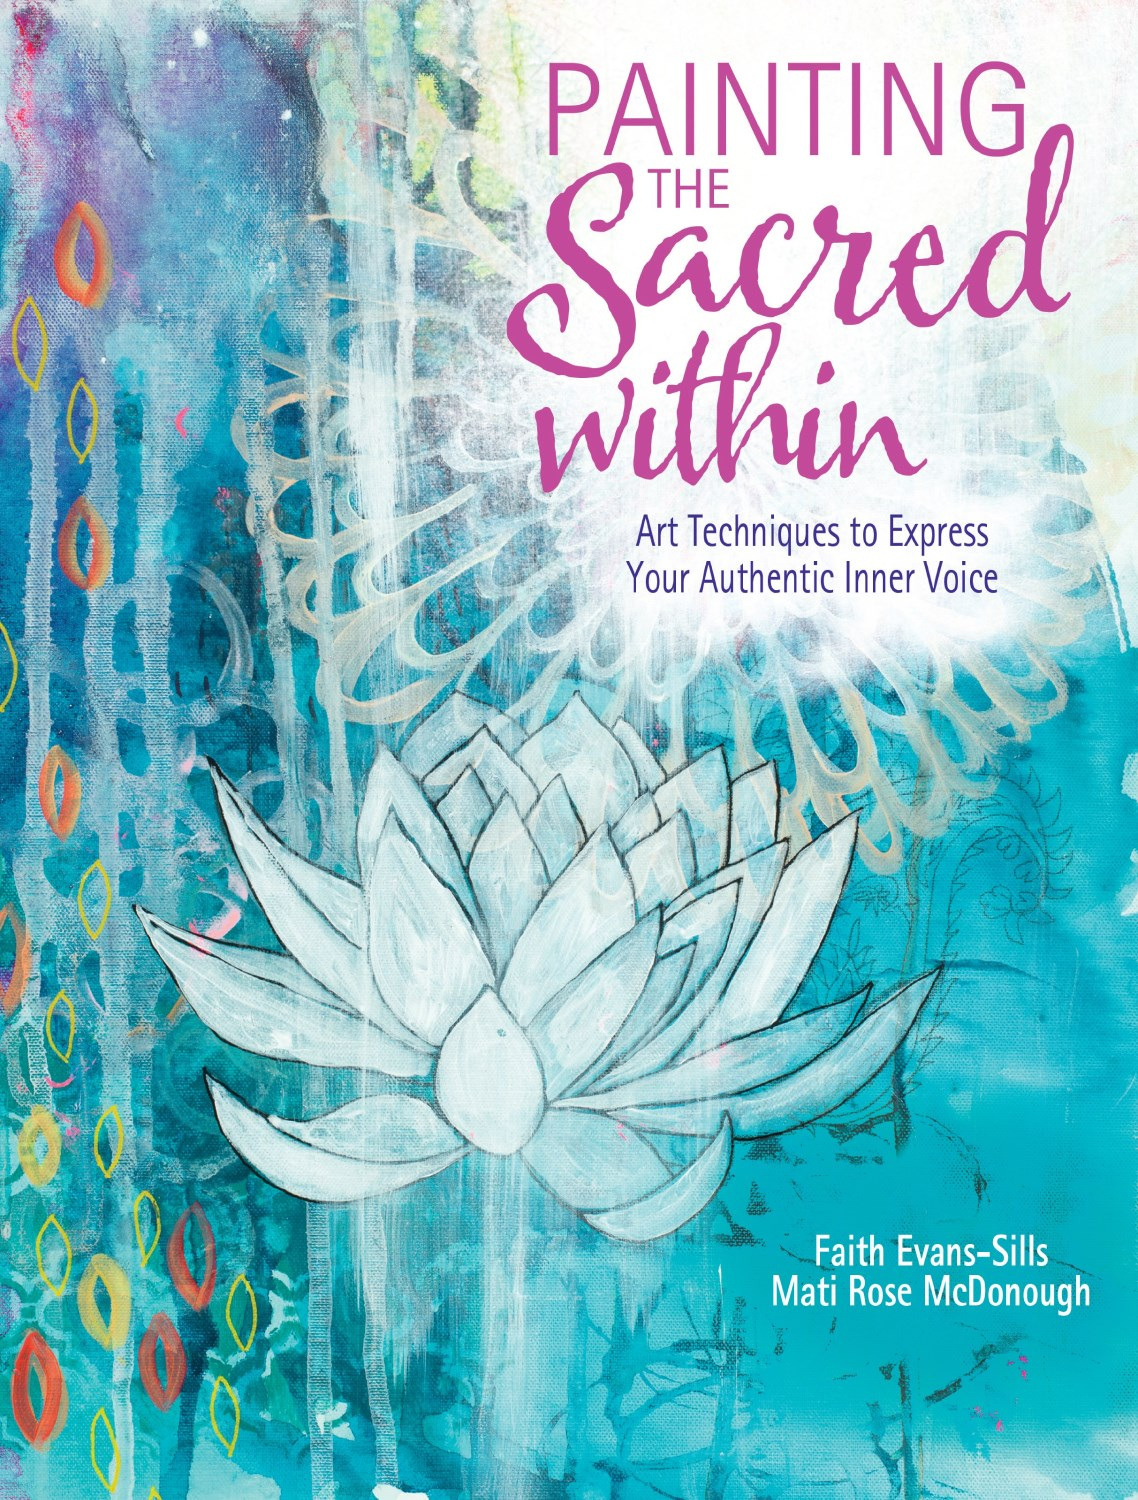 Painting the Sacred Within: Art Techniques to Express Your Authentic Inner Voice by Faith Evans-Sills and Mati Rose McDonough